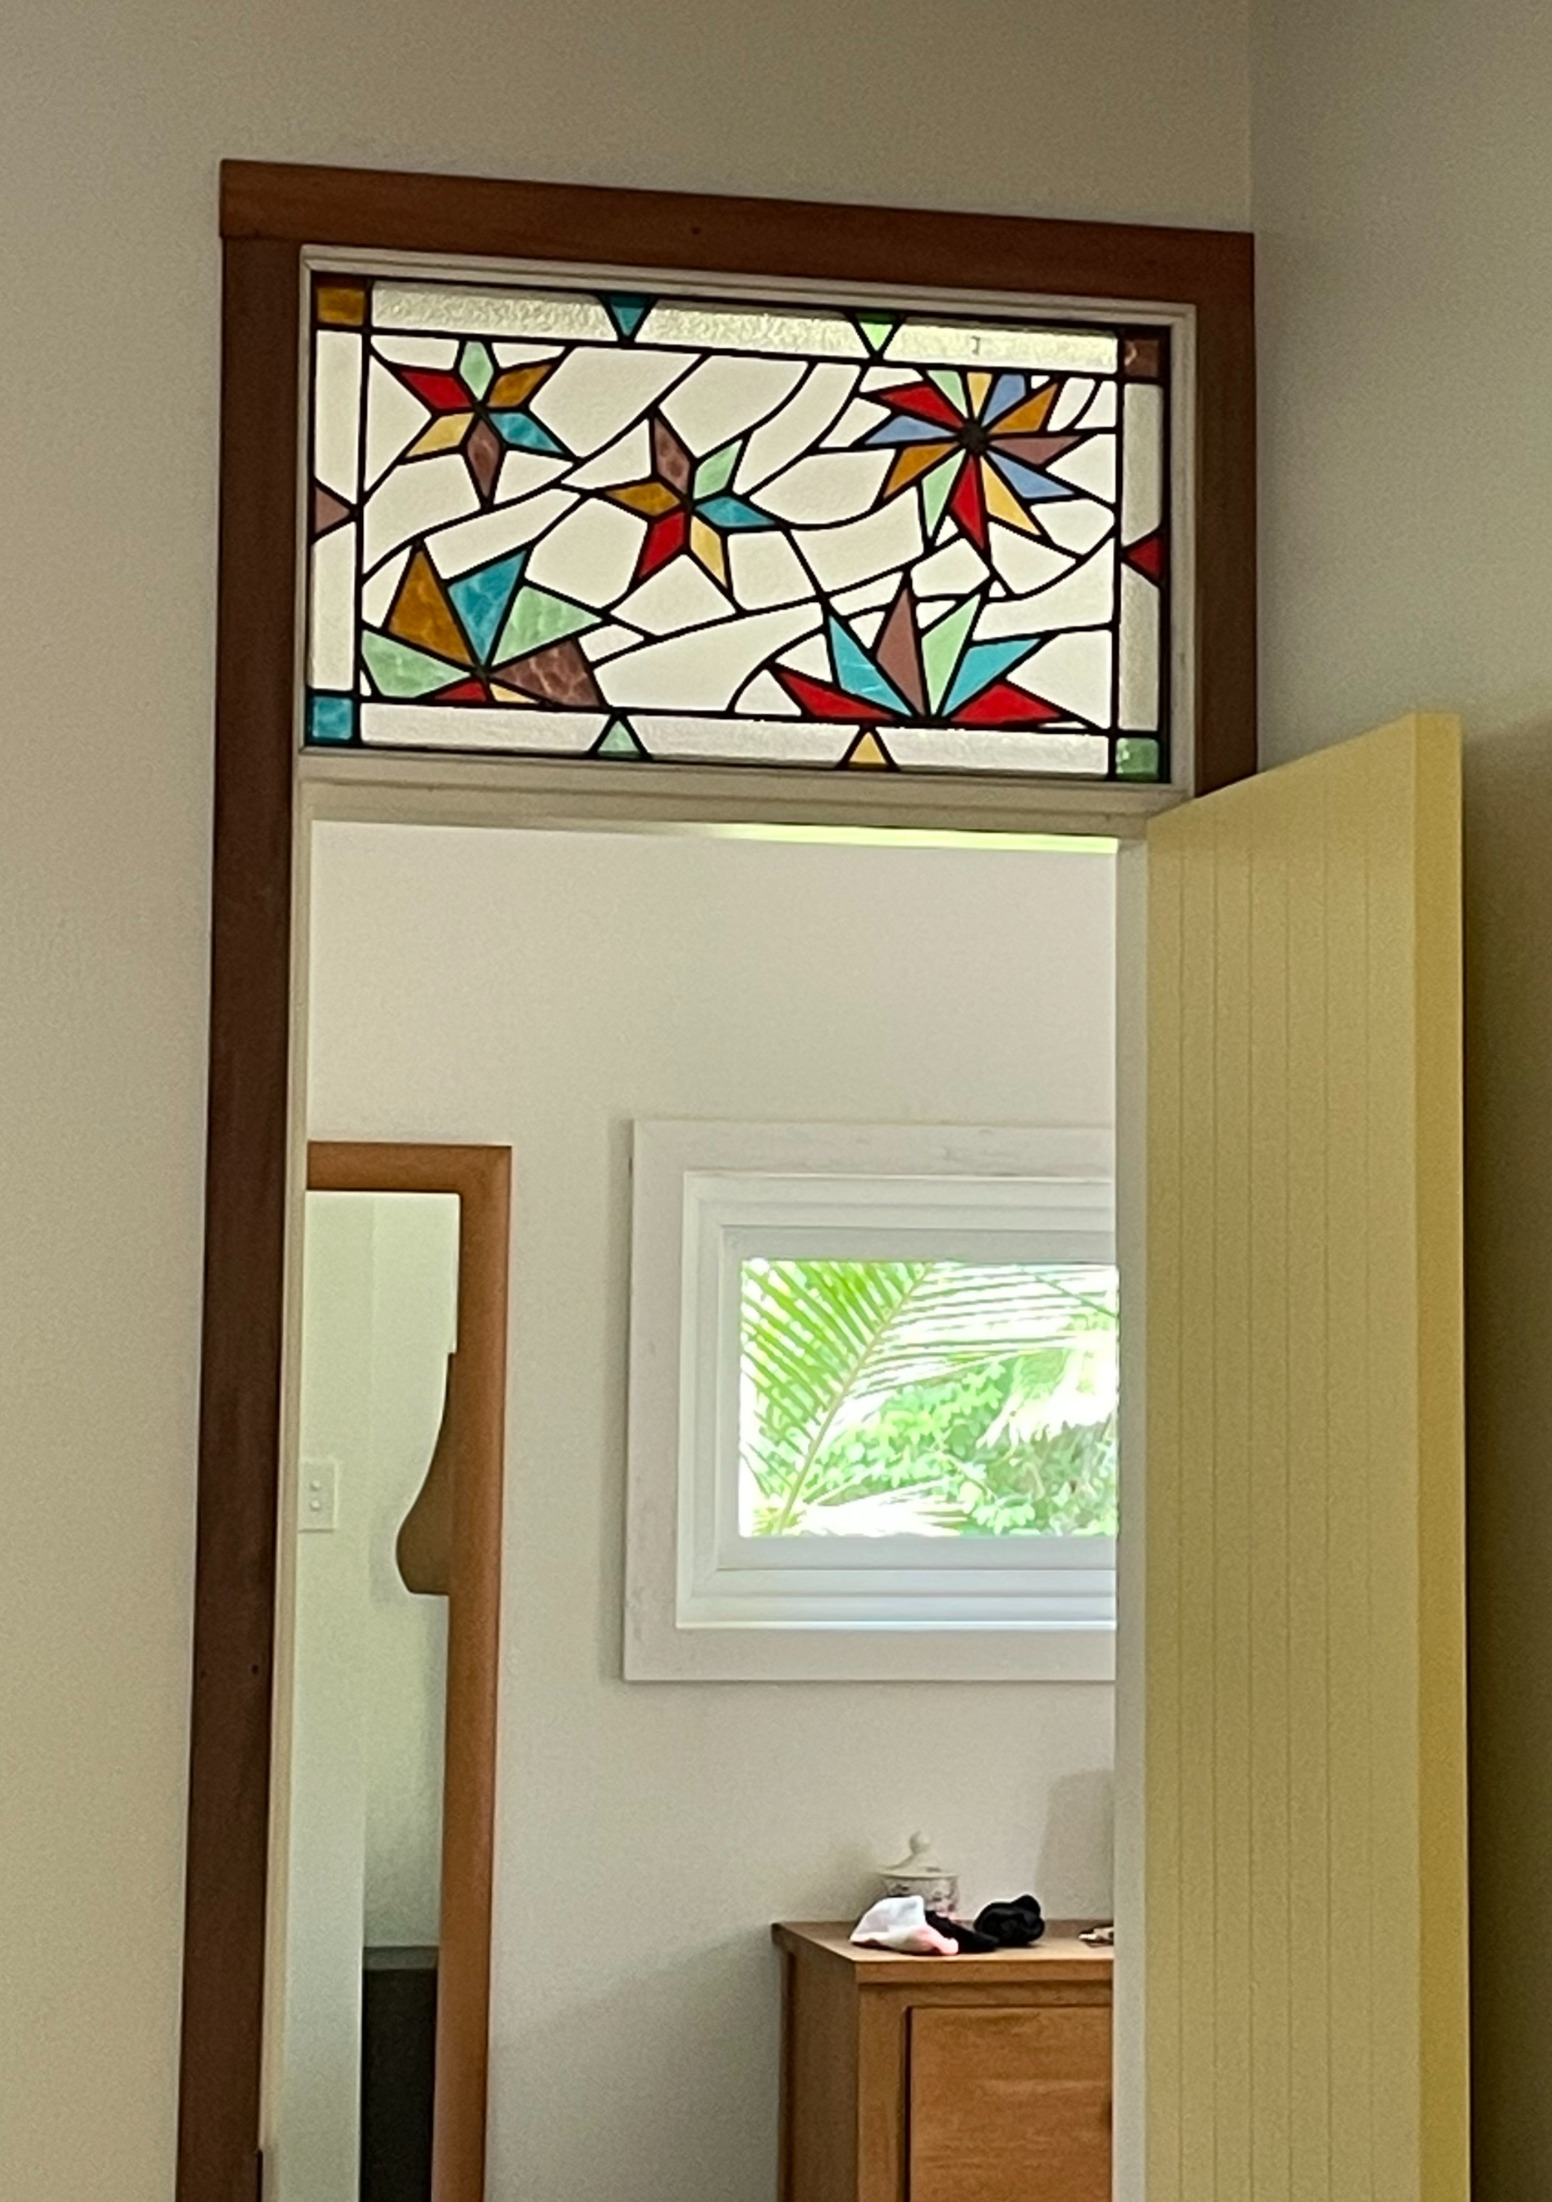 Transom windows Mullumbimby 2020